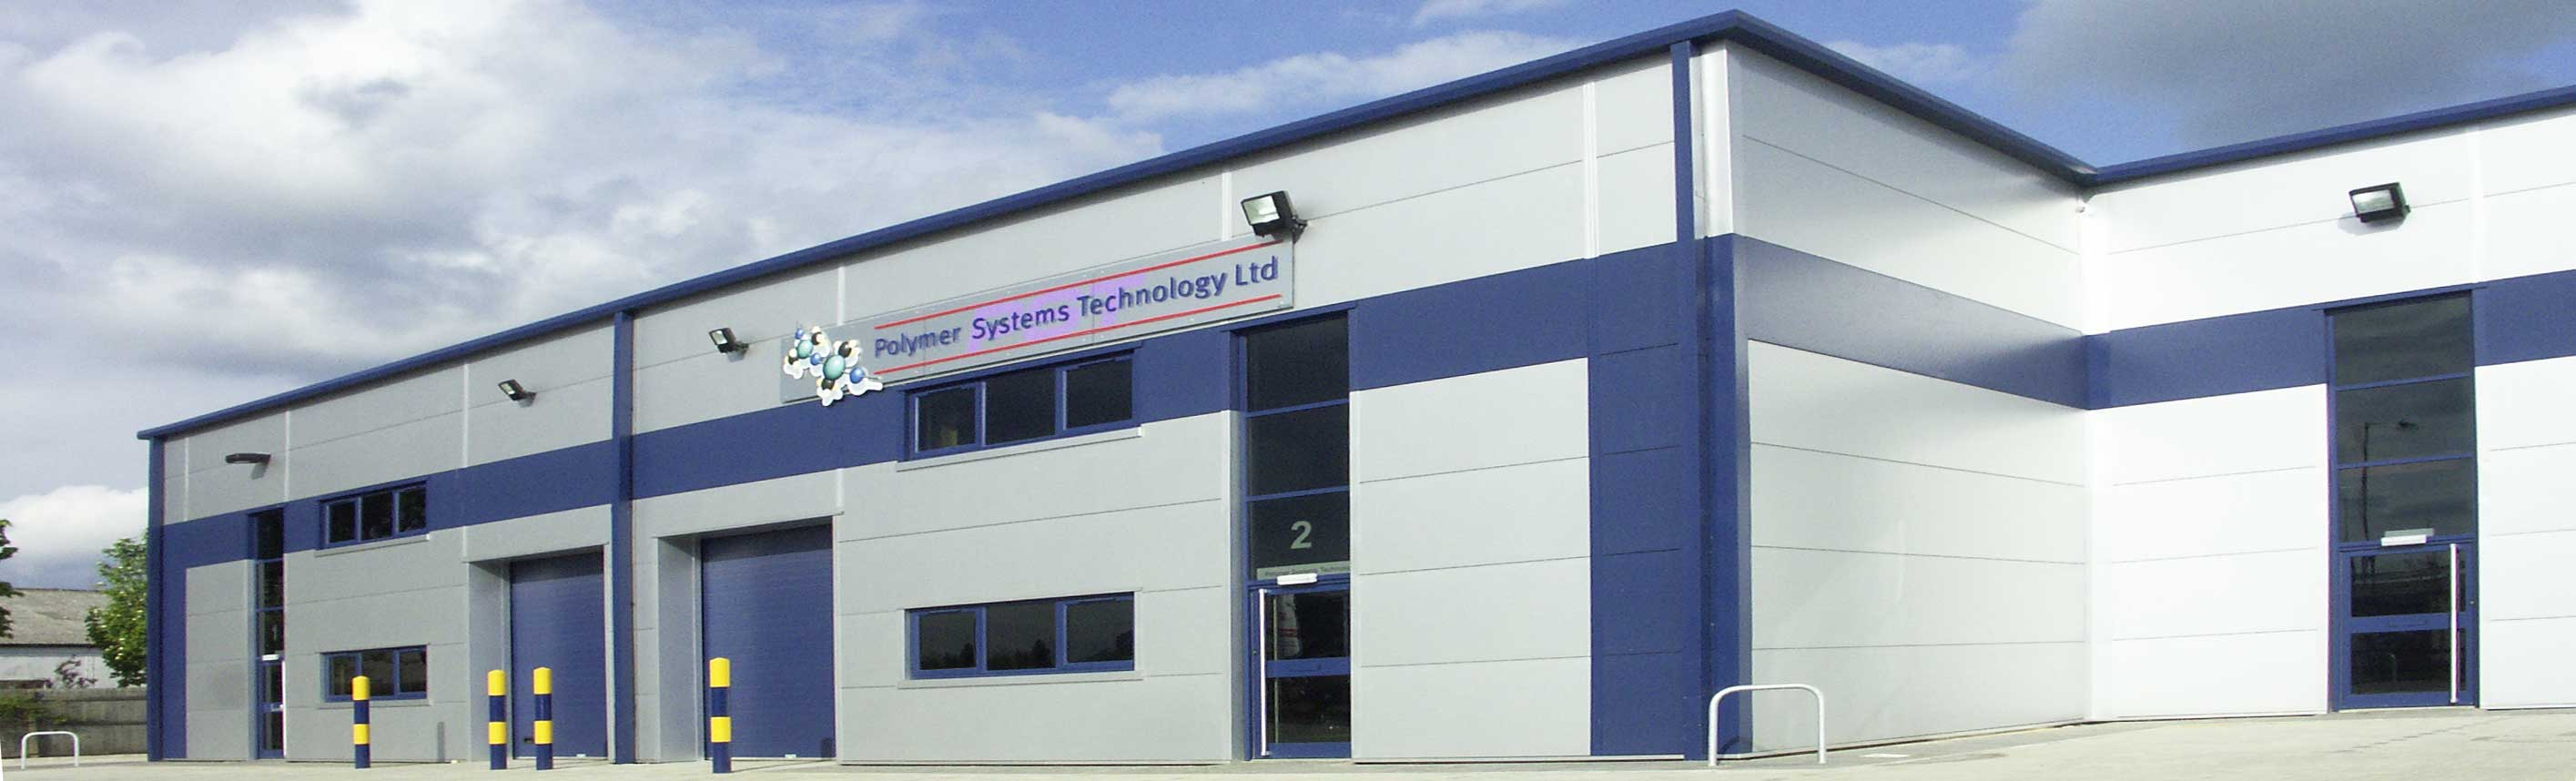 PST - Home of Silicone High Wycombe